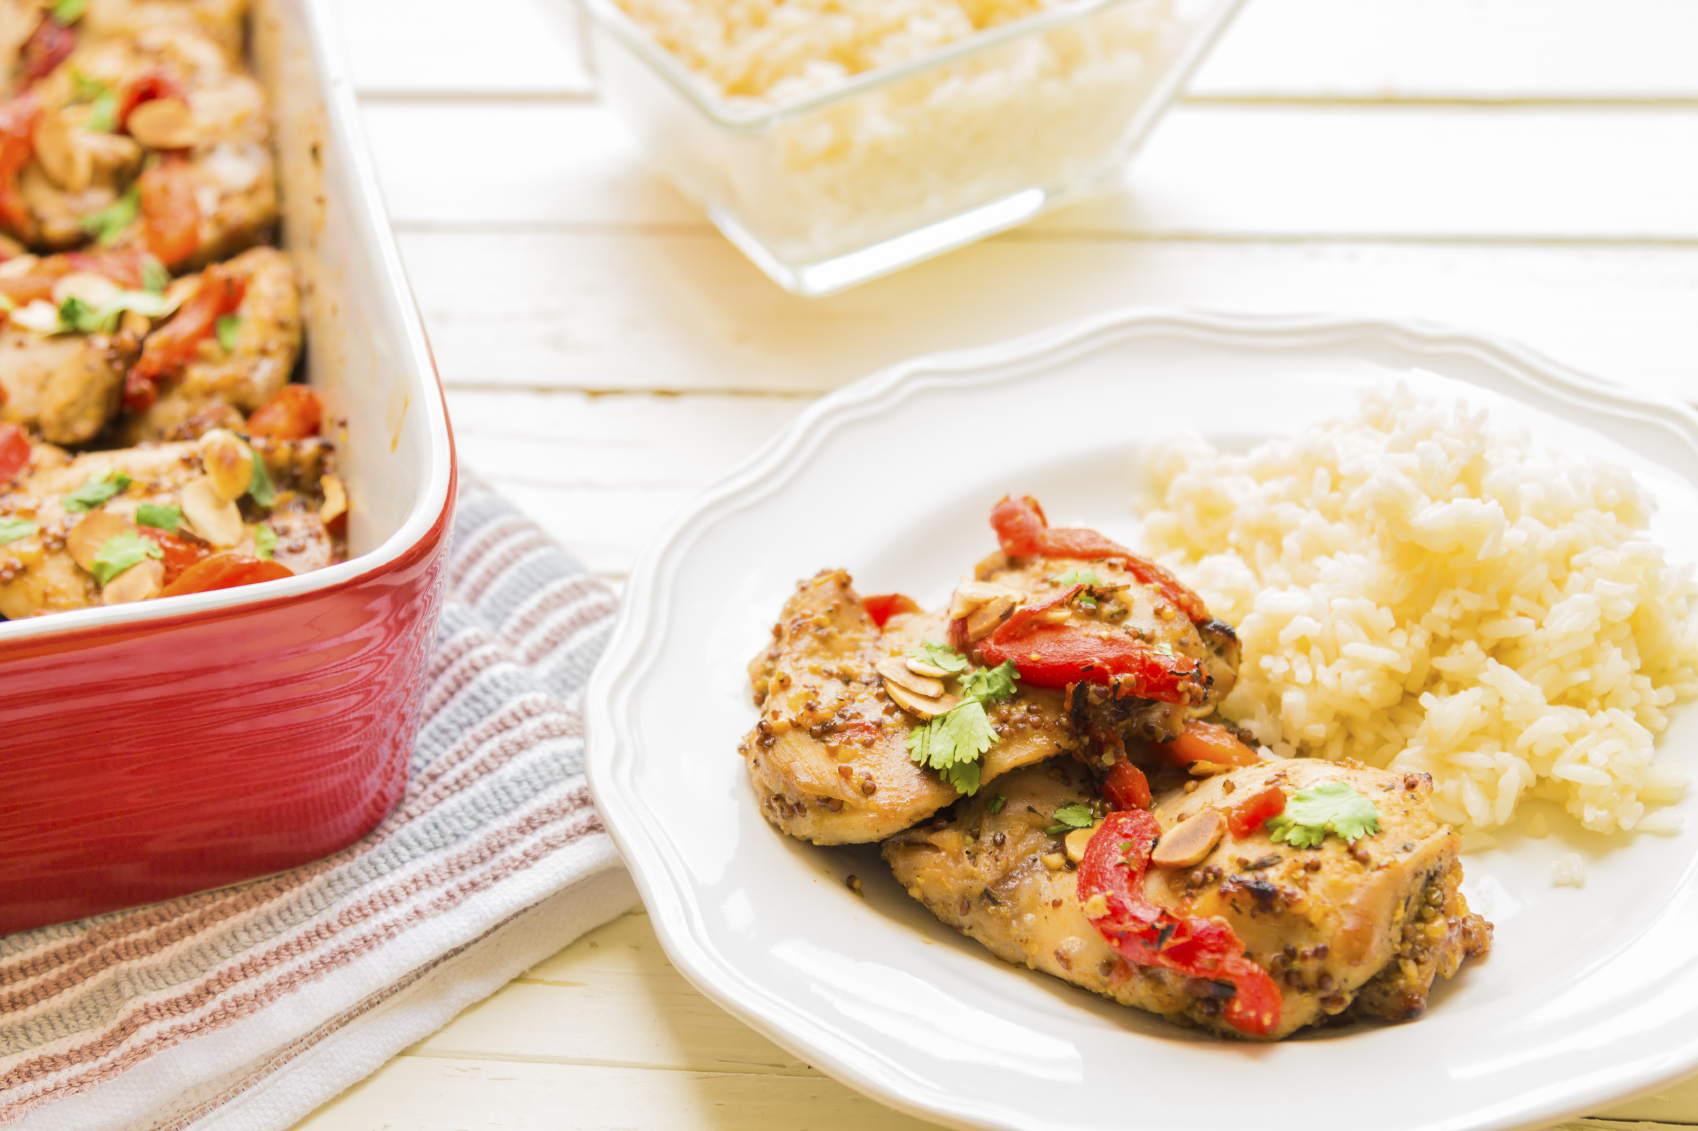 Roasted chicken thighs with red peppers